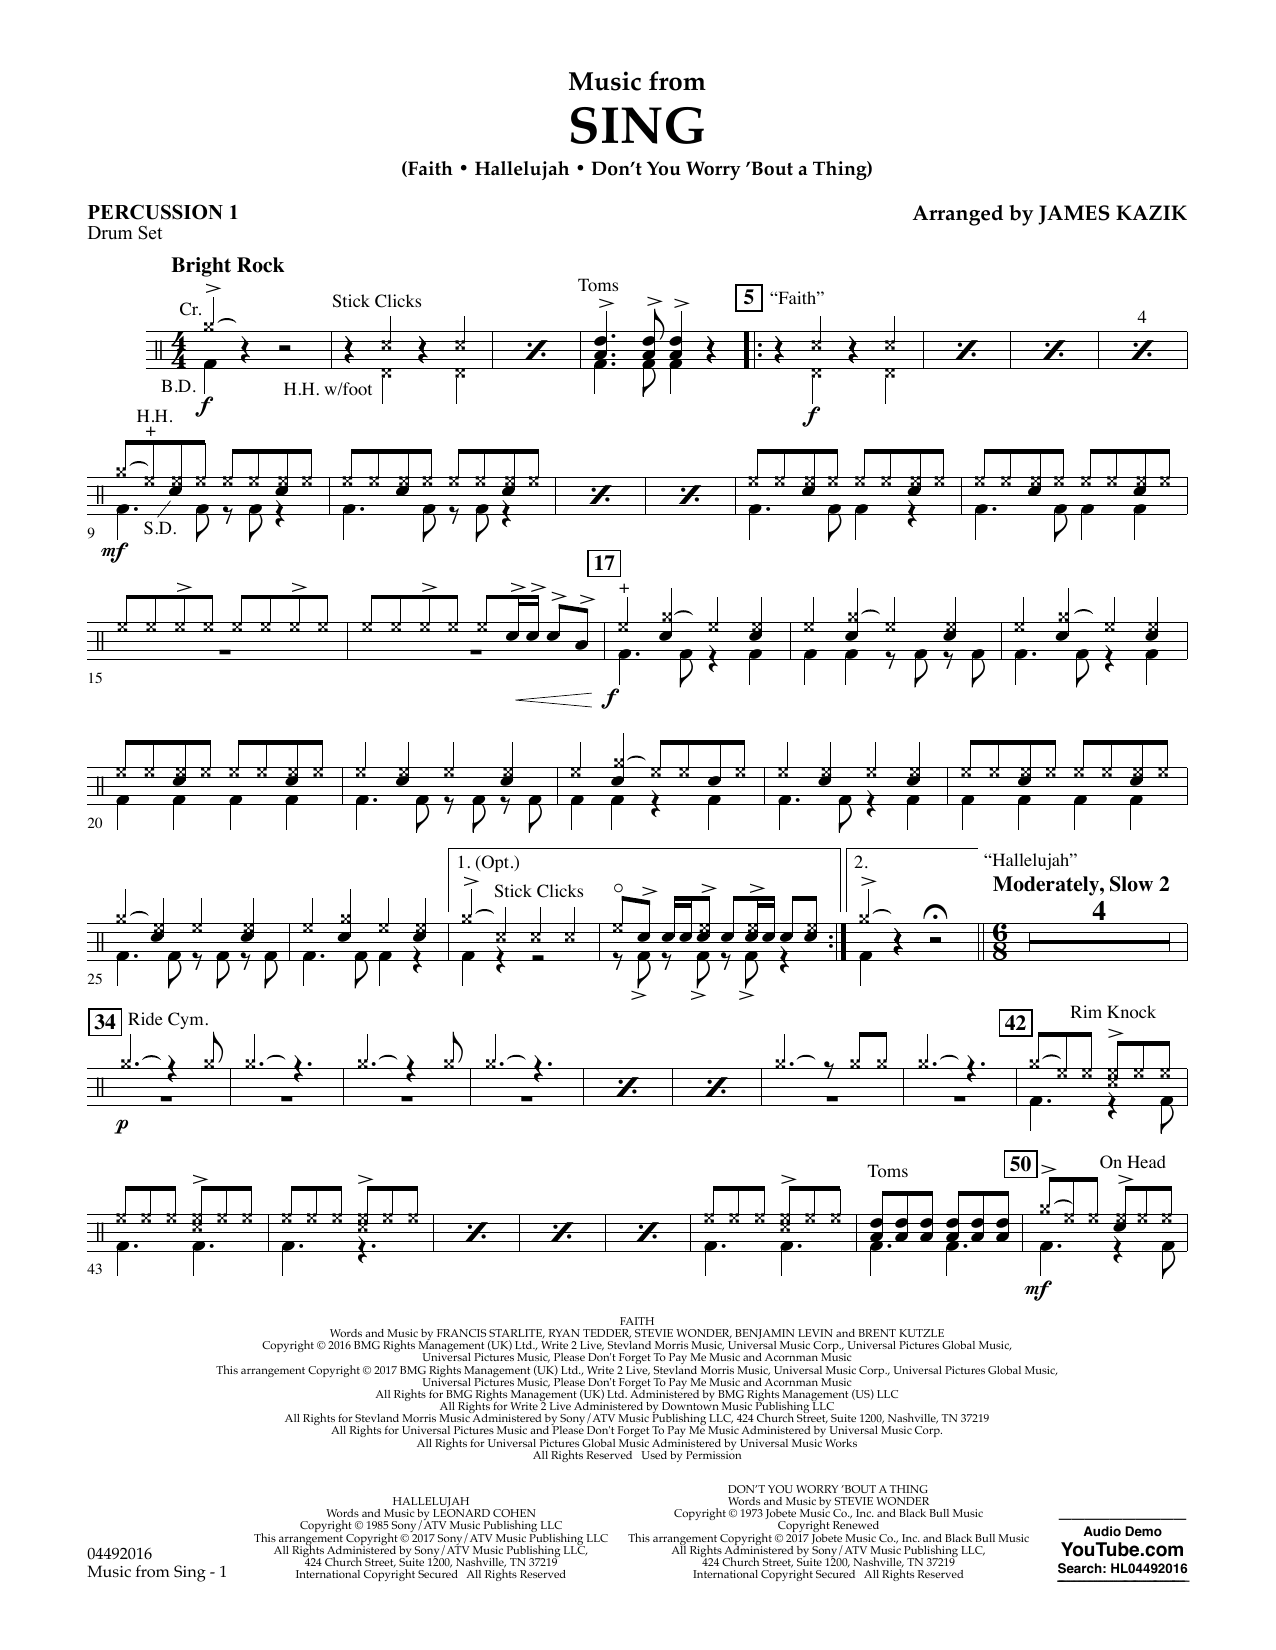 James Kazik Music from Sing - Percussion 1 sheet music notes and chords. Download Printable PDF.